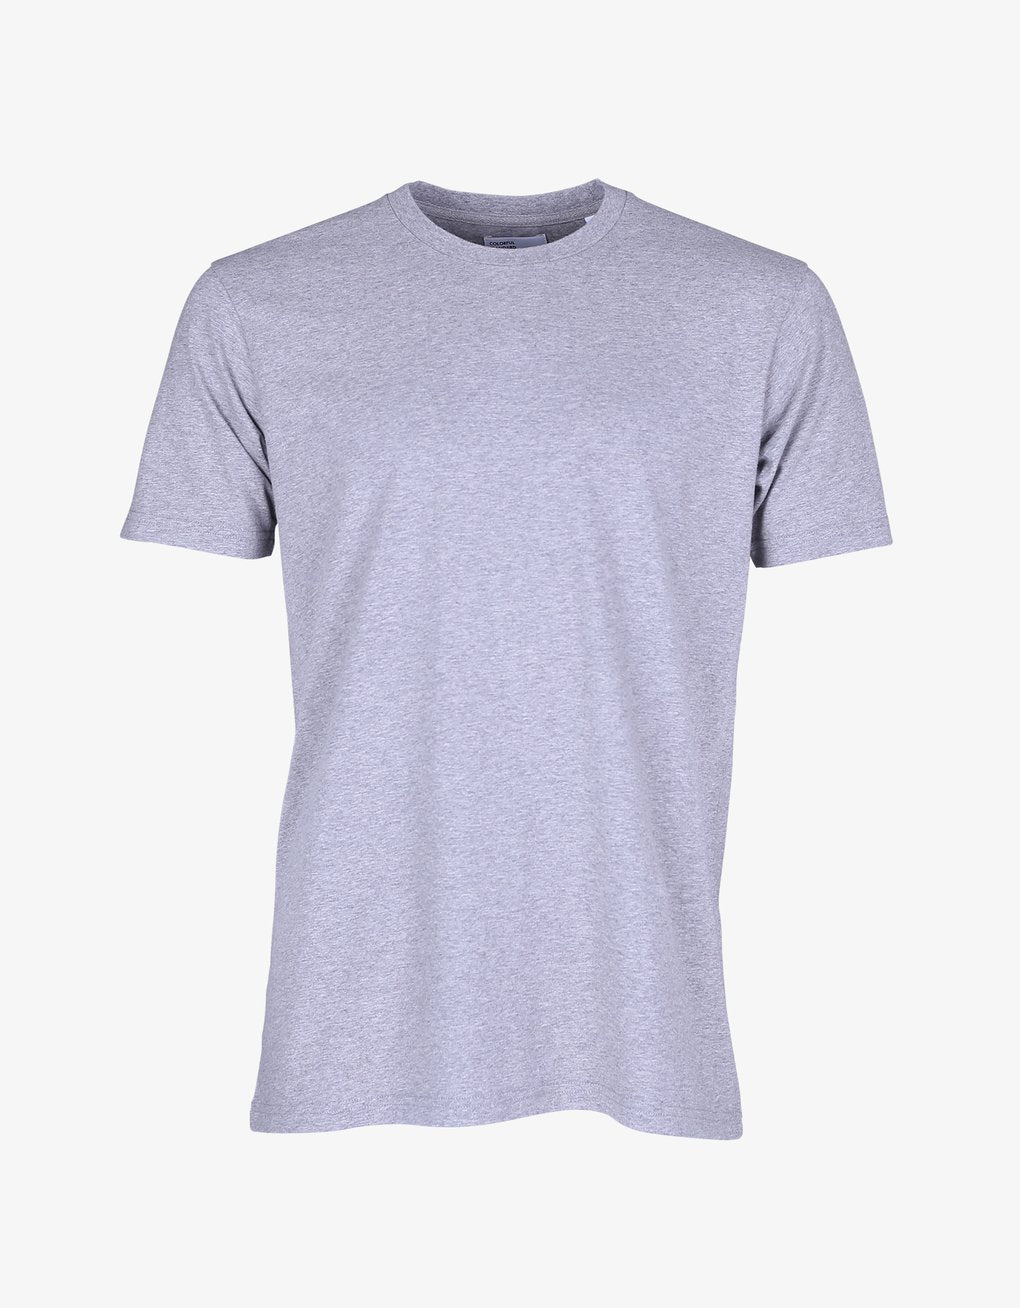 COLORFUL STANDARD | Classic Organic T-shirt | Heather Grey - LONDØNWORKS